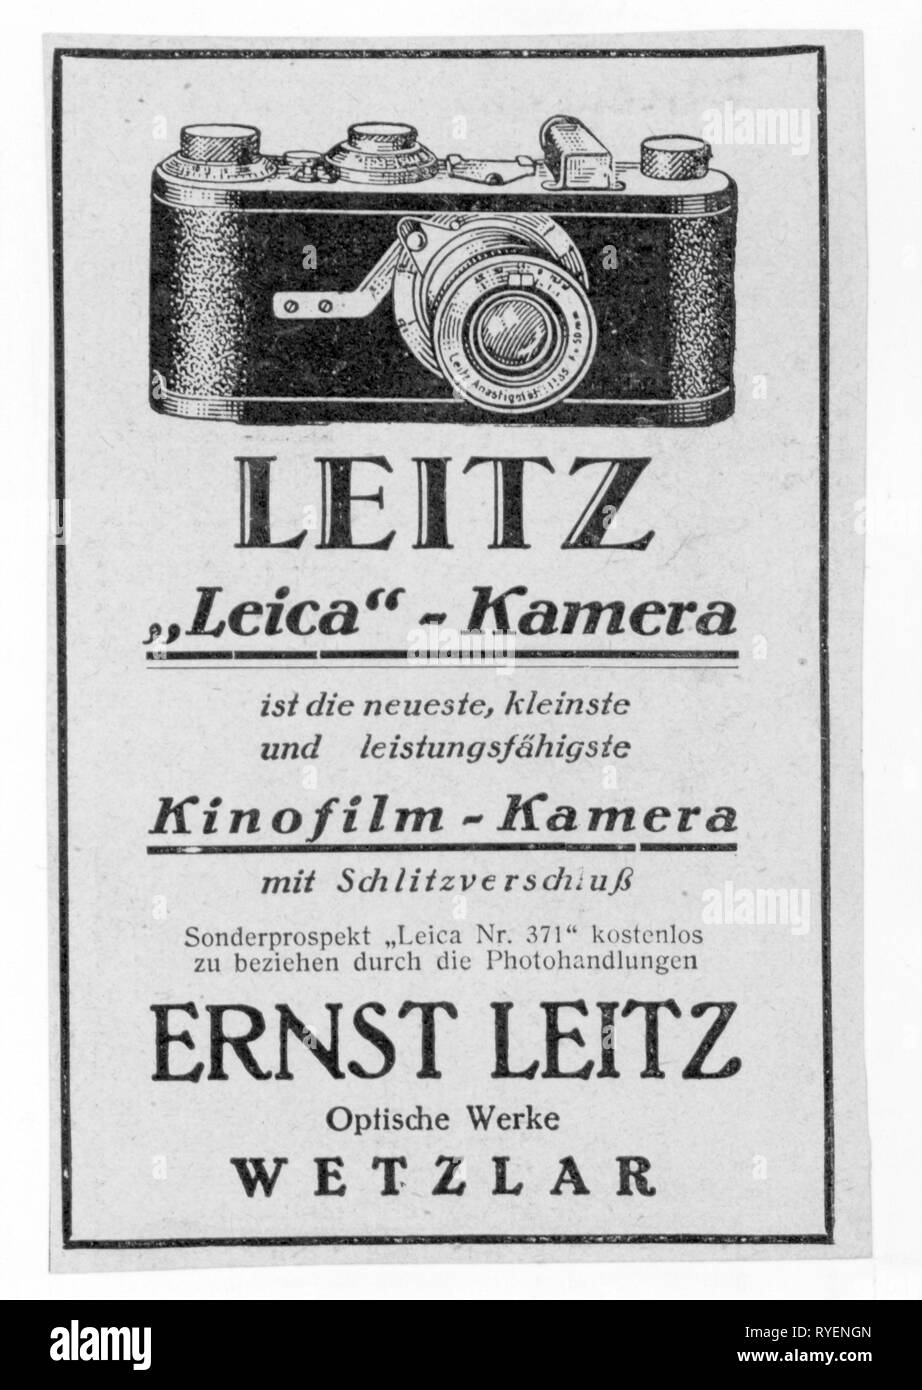 advertising, photography, advertisement for the Leitz 'Leica Nr. 371' by Ernst Leitz, Wetzlar, 1925, Additional-Rights-Clearance-Info-Not-Available - Stock Image